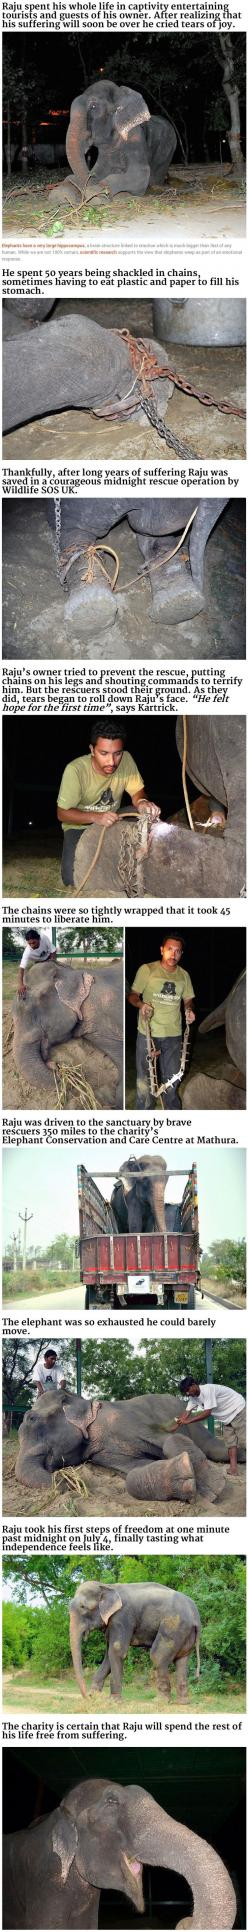 Elephant cries after being rescued from 50 years of suffering. - Imgur: Elephants, Humanity Restored, Animal Rescue Story, Rescue Animal, Animal Stories, Animal Cruelty Stories, Rescued Elephant, Animal Rescues Stories